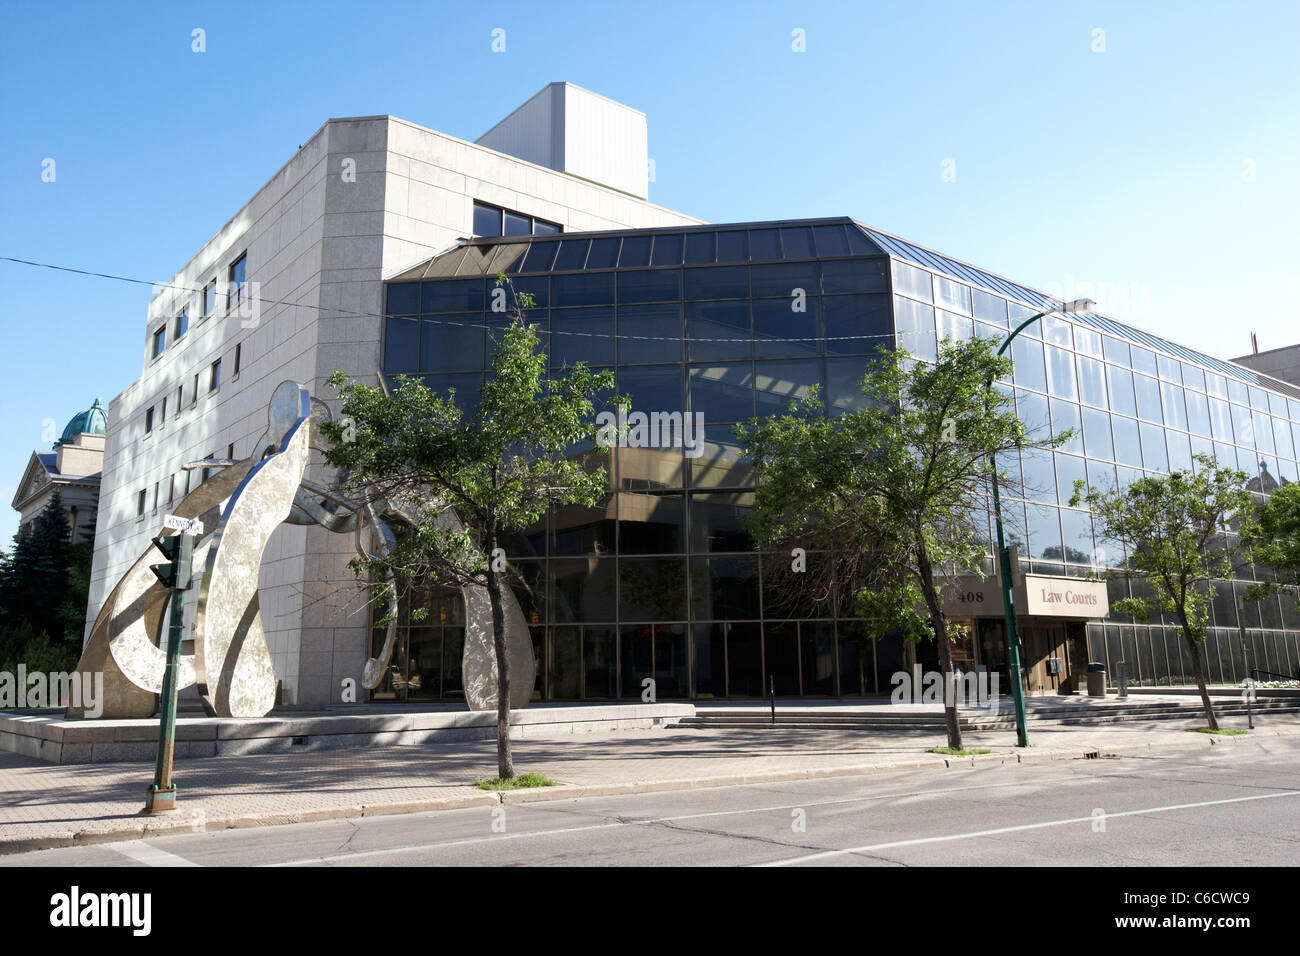 law courts building with gordon reeves justice scupture winnipeg manitoba canada - Stock Image